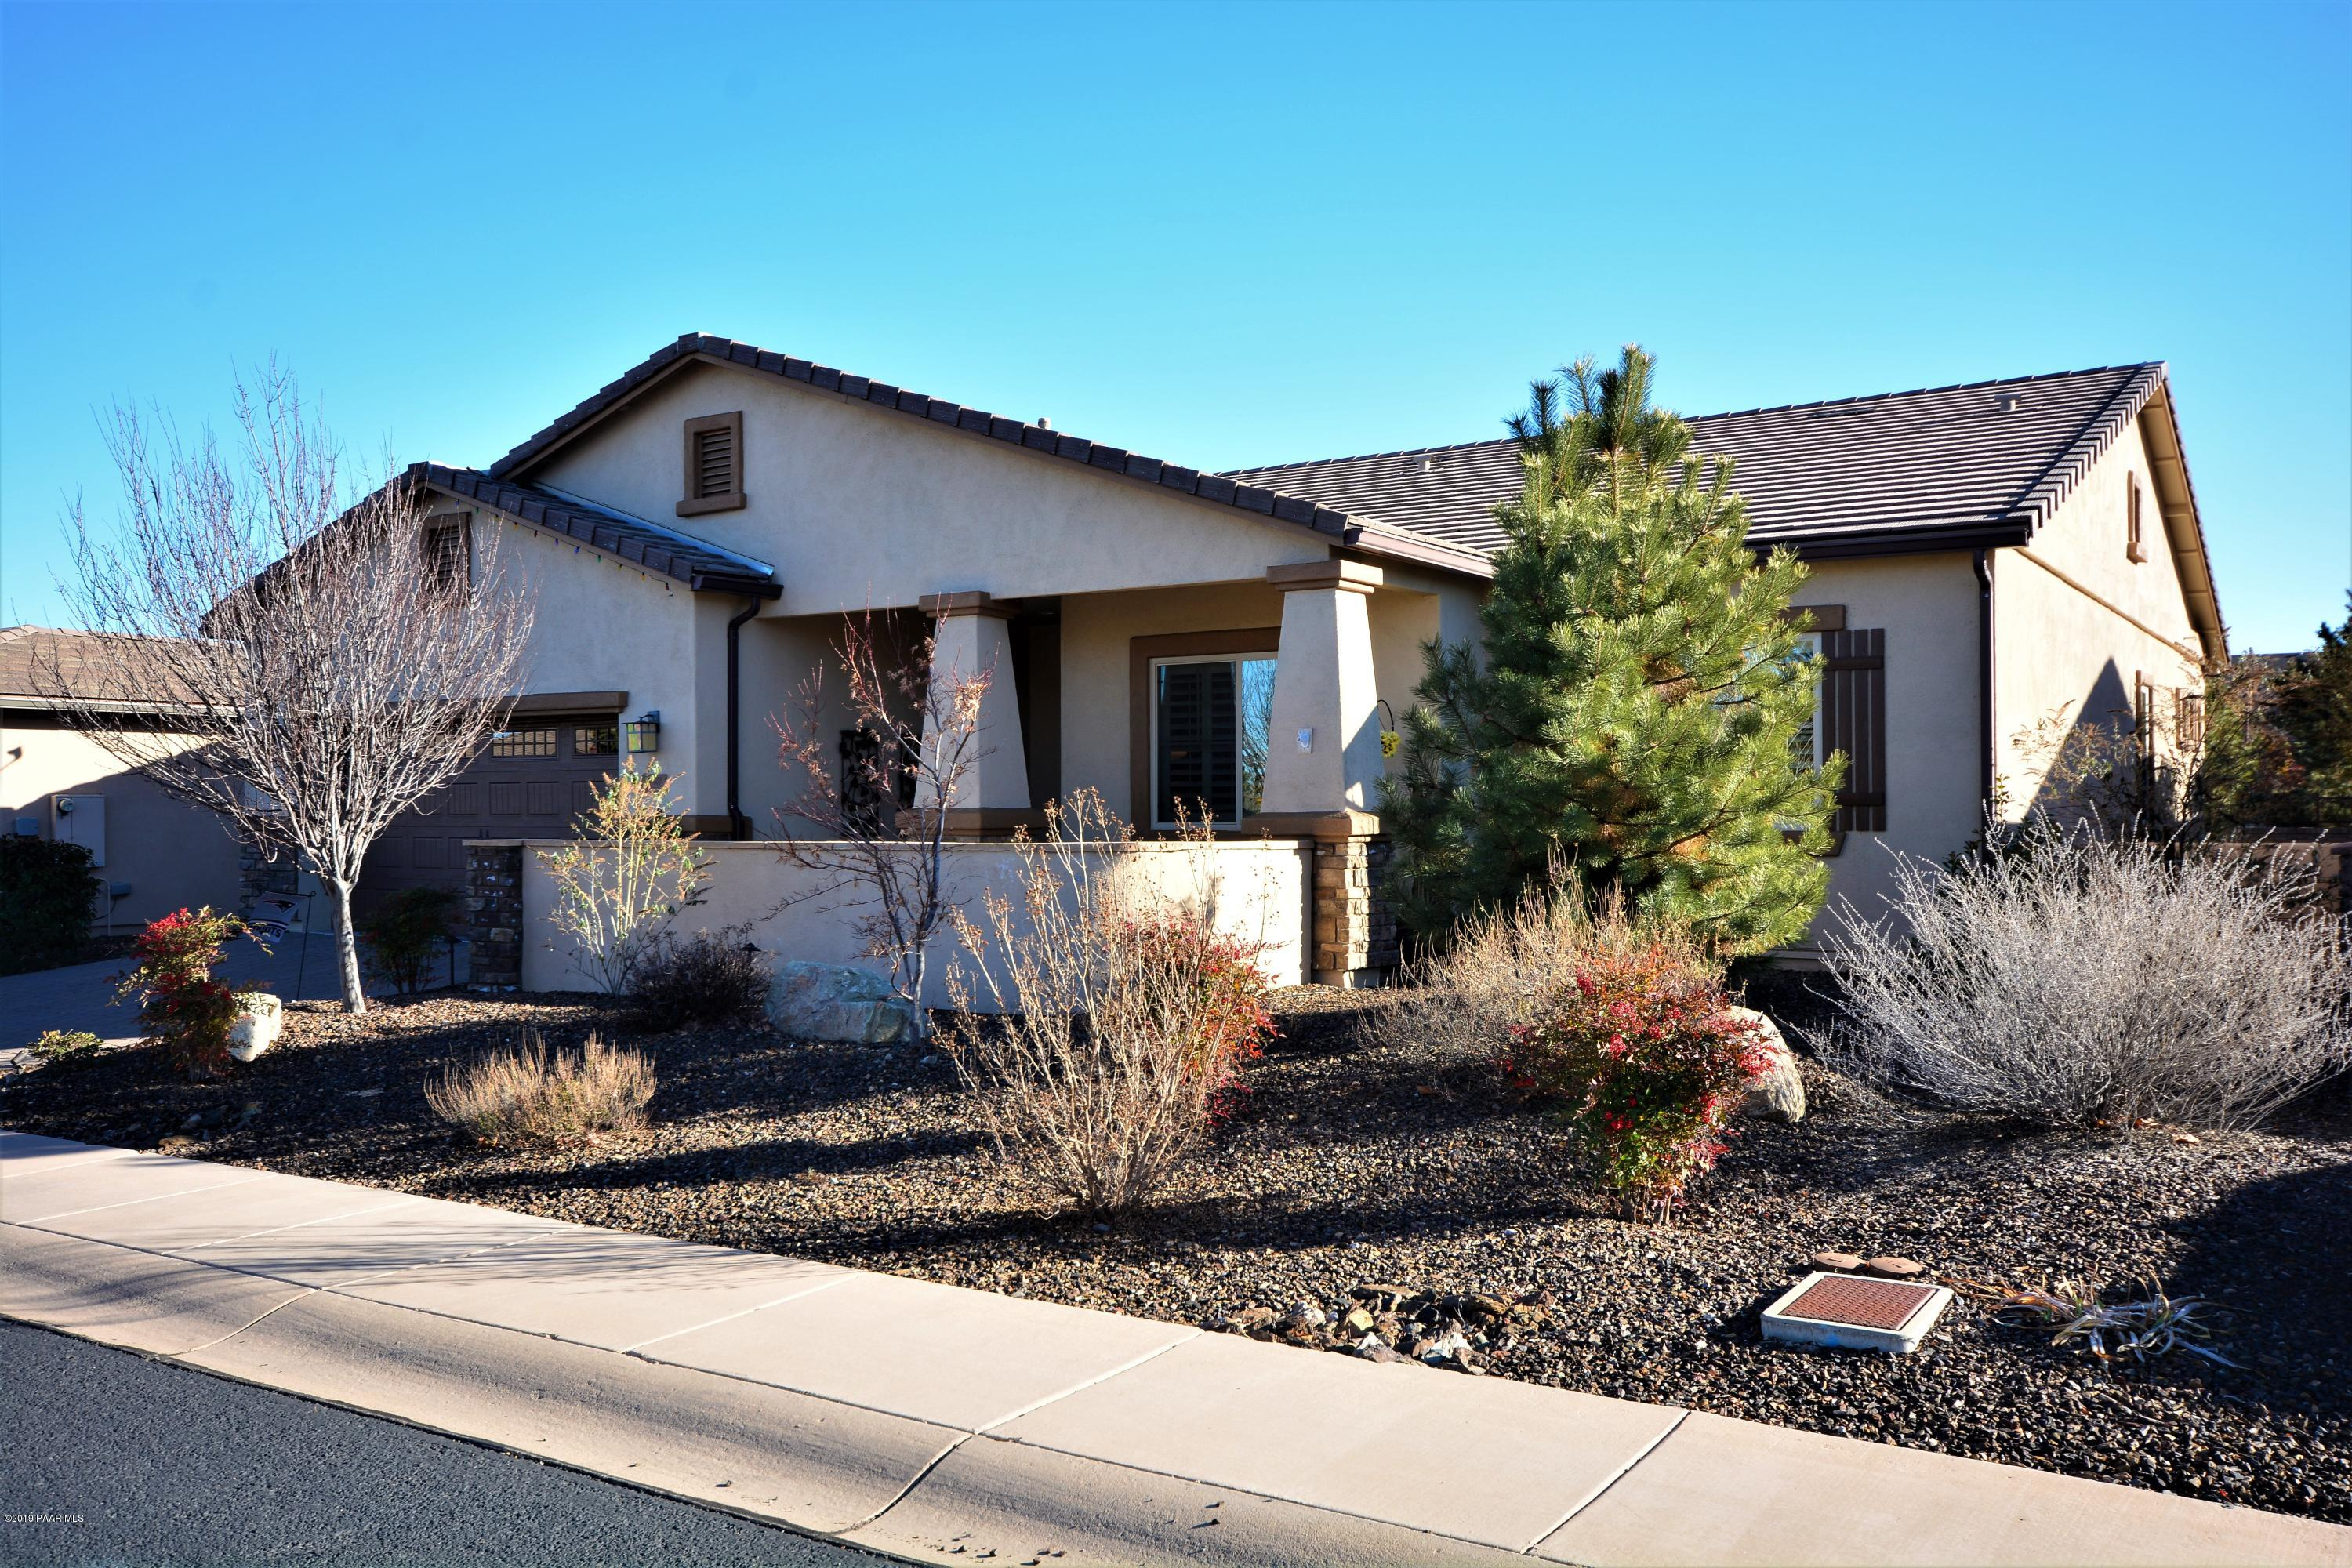 Photo of 407 Cabaret, Prescott, AZ 86301